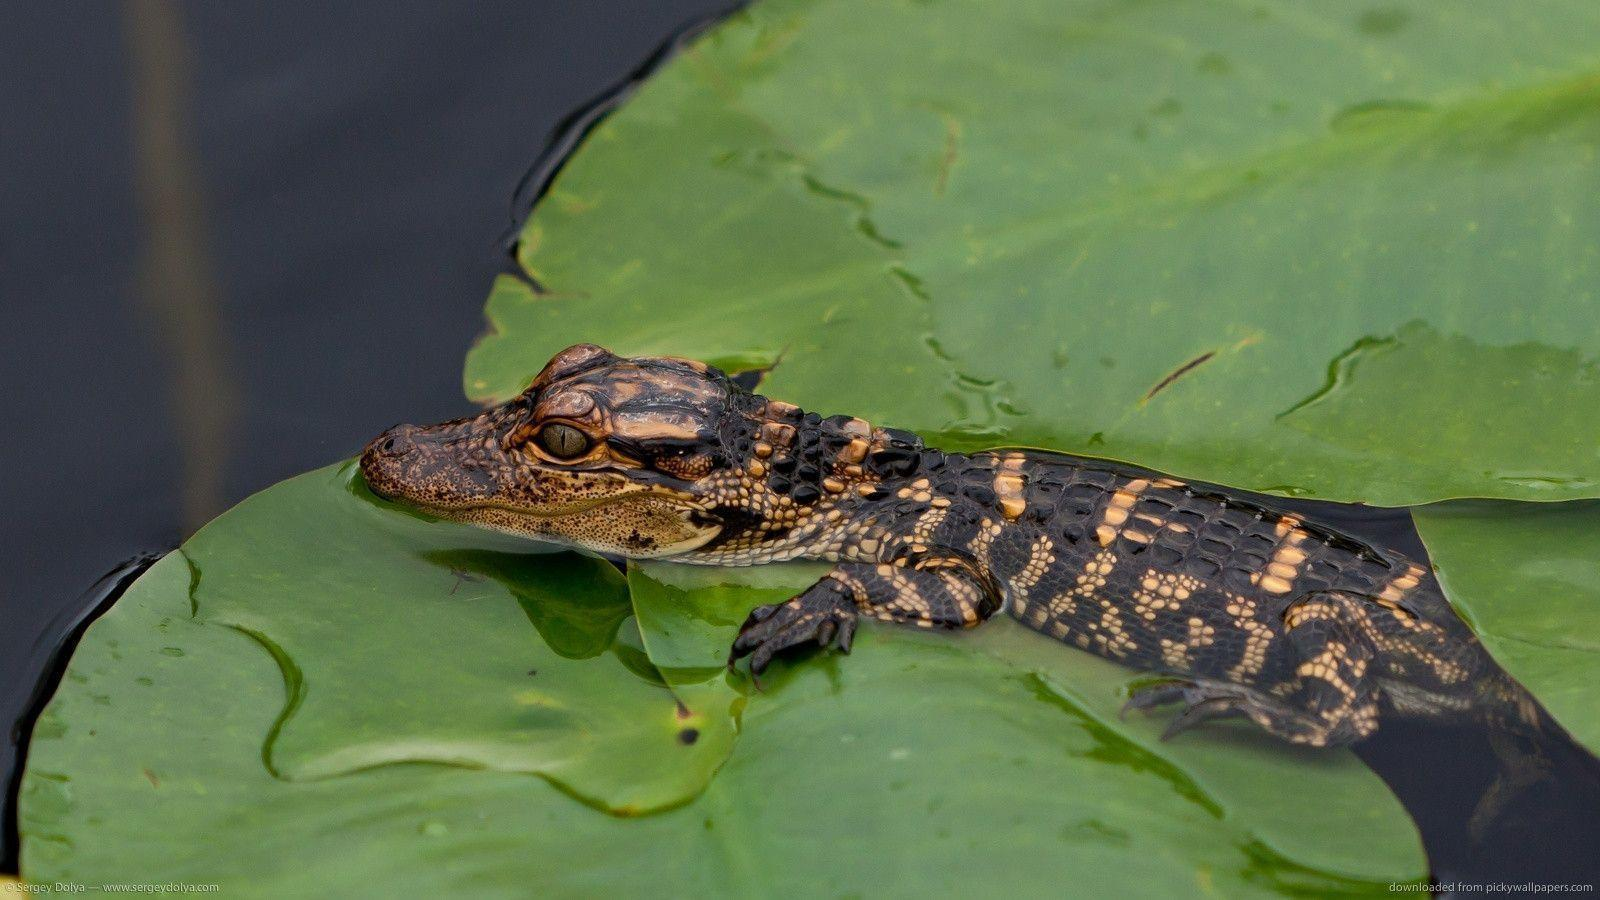 Download 1600x900 Small Alligator Wallpapers